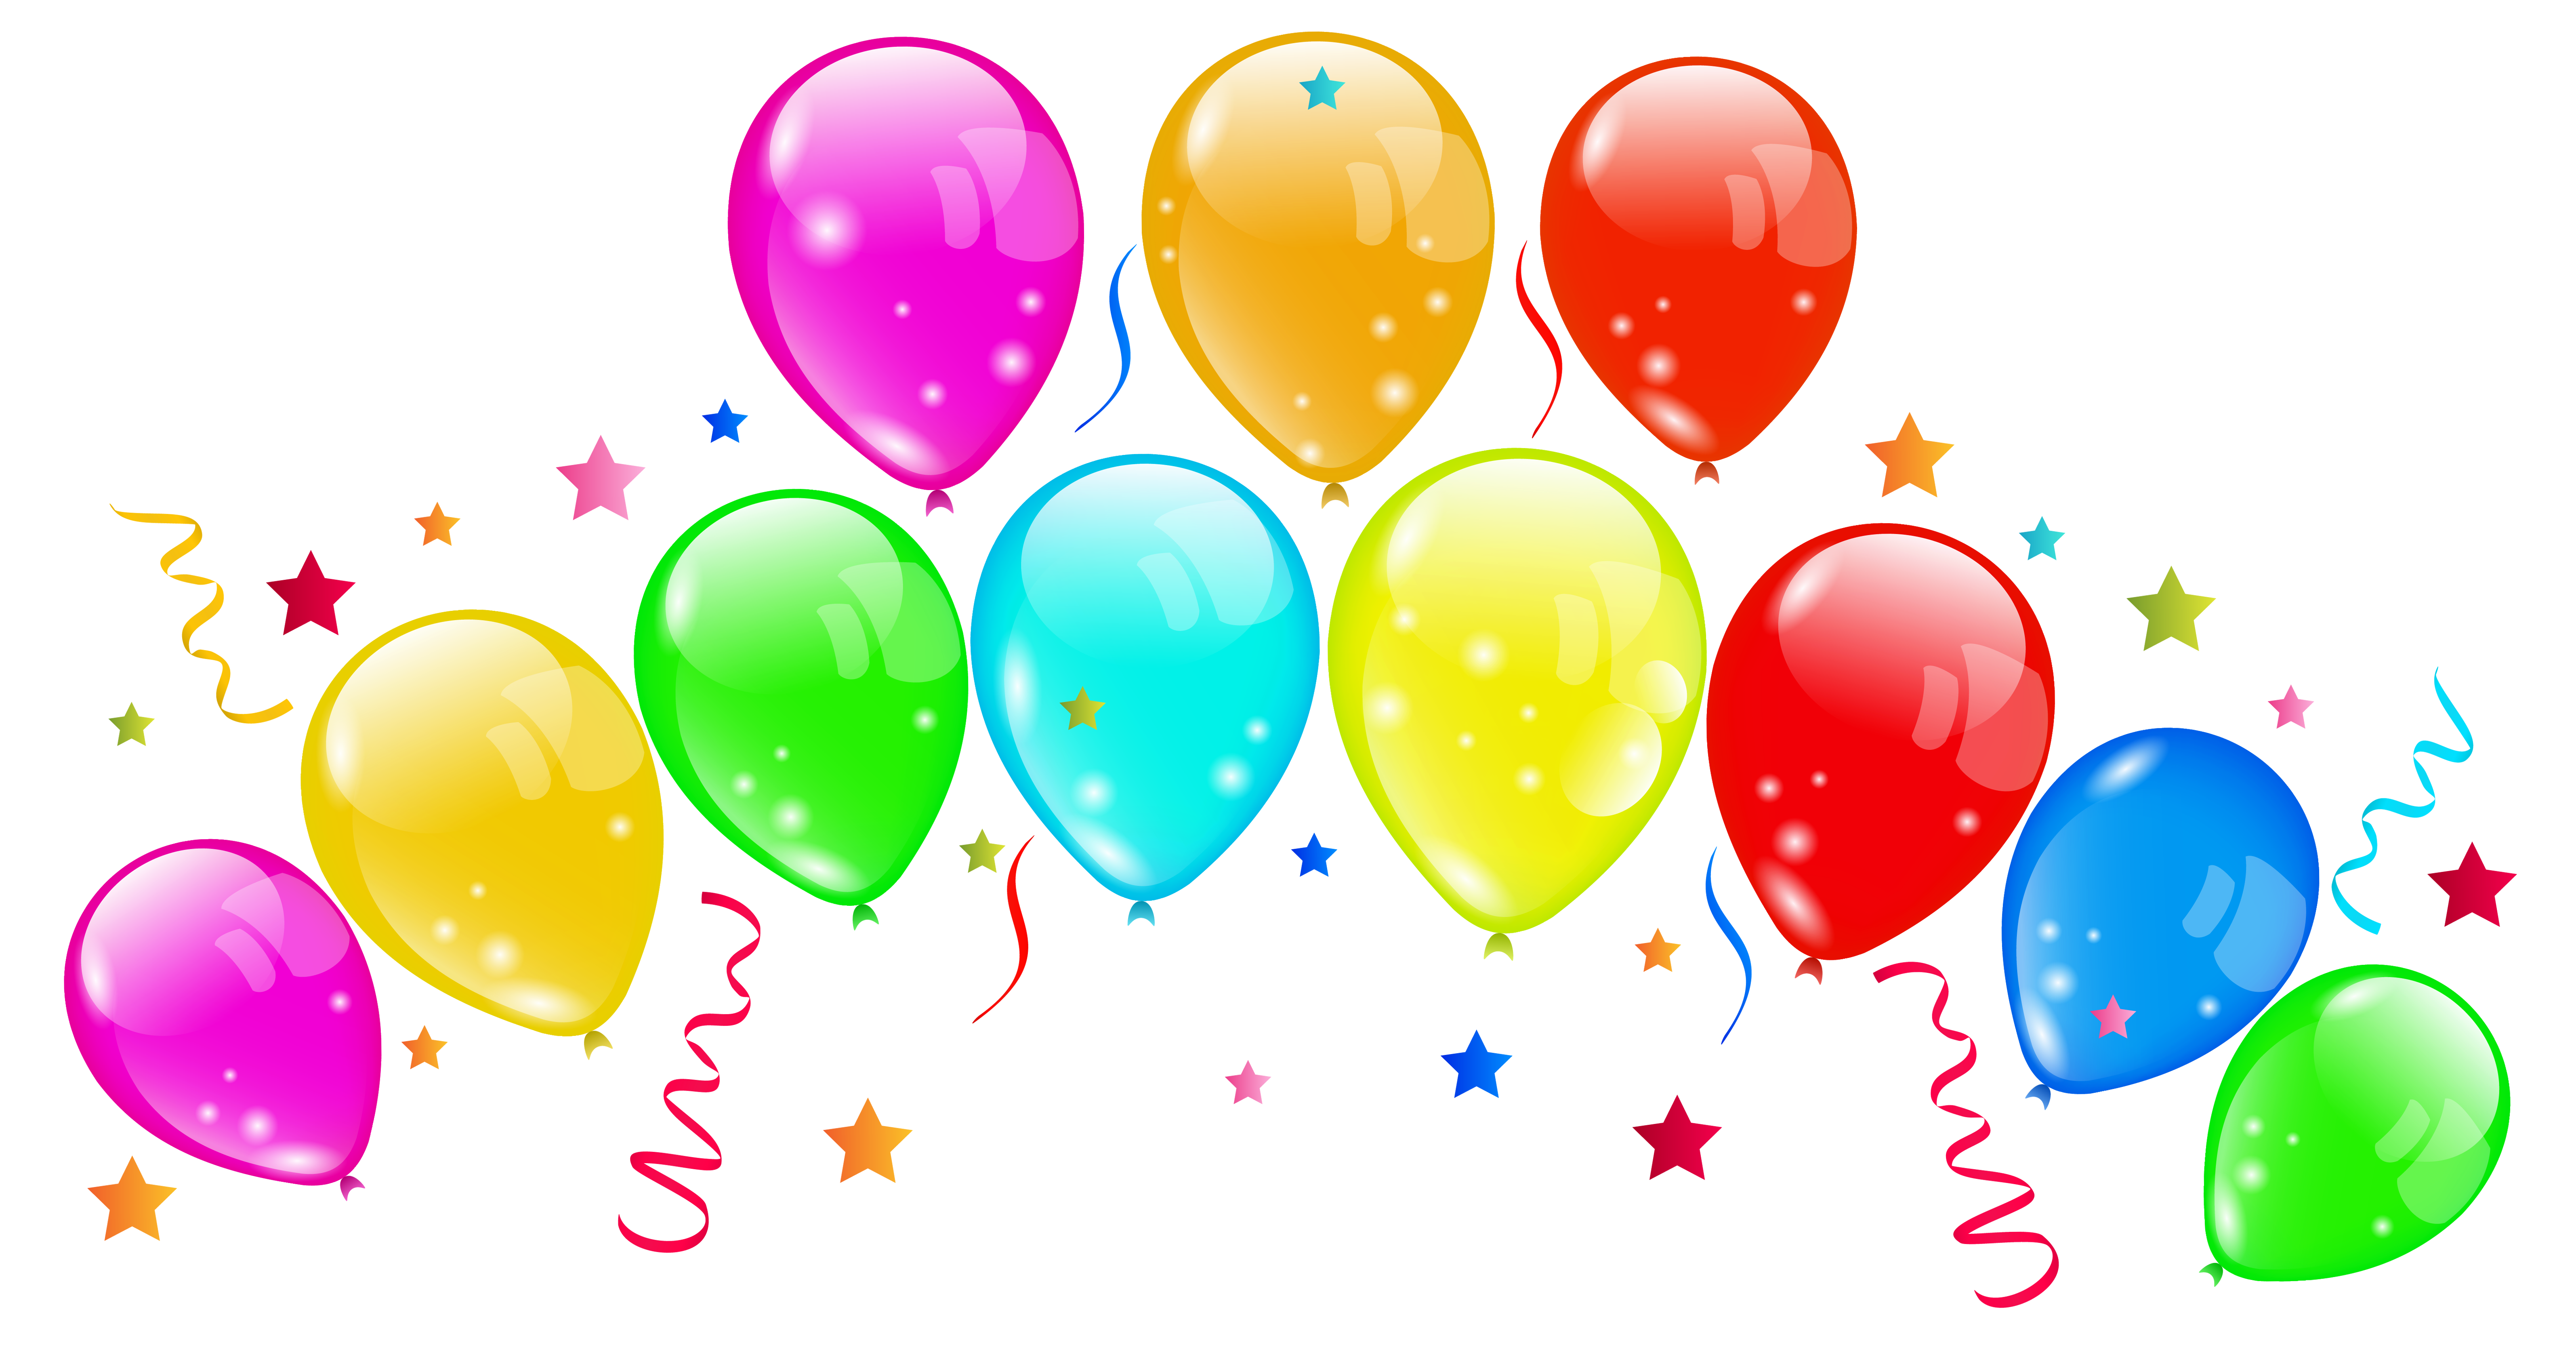 Nose clipart round. Decorative balloons png image